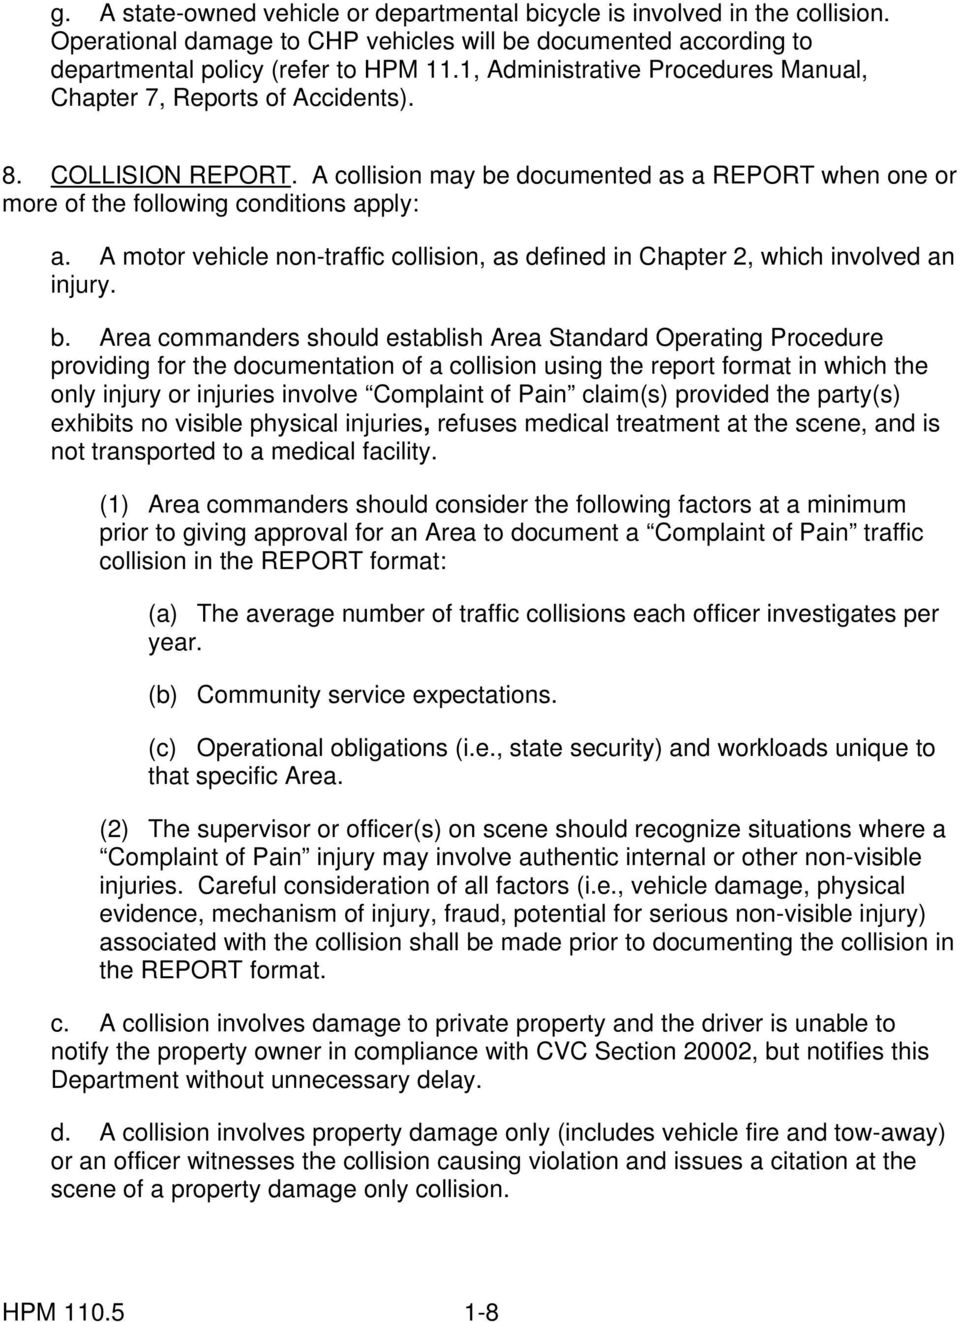 A motor vehicle non-traffic collision, as defined in Chapter 2, which  involved